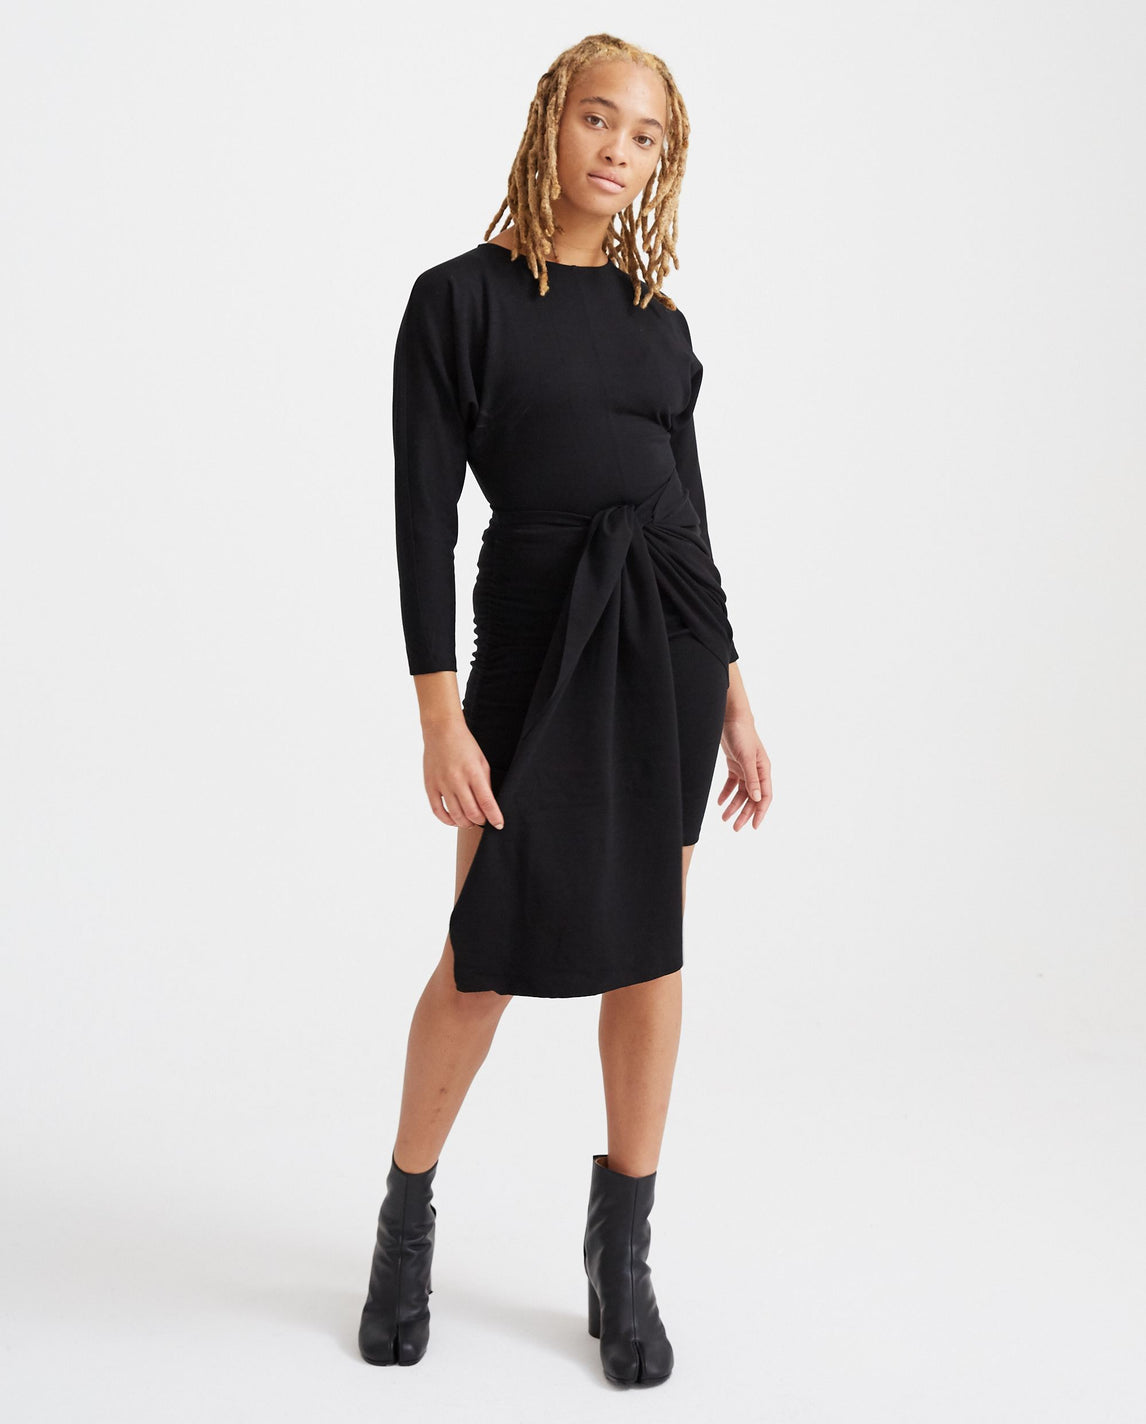 Bodycon Jersey Dress - Black WOMENS VEJAS